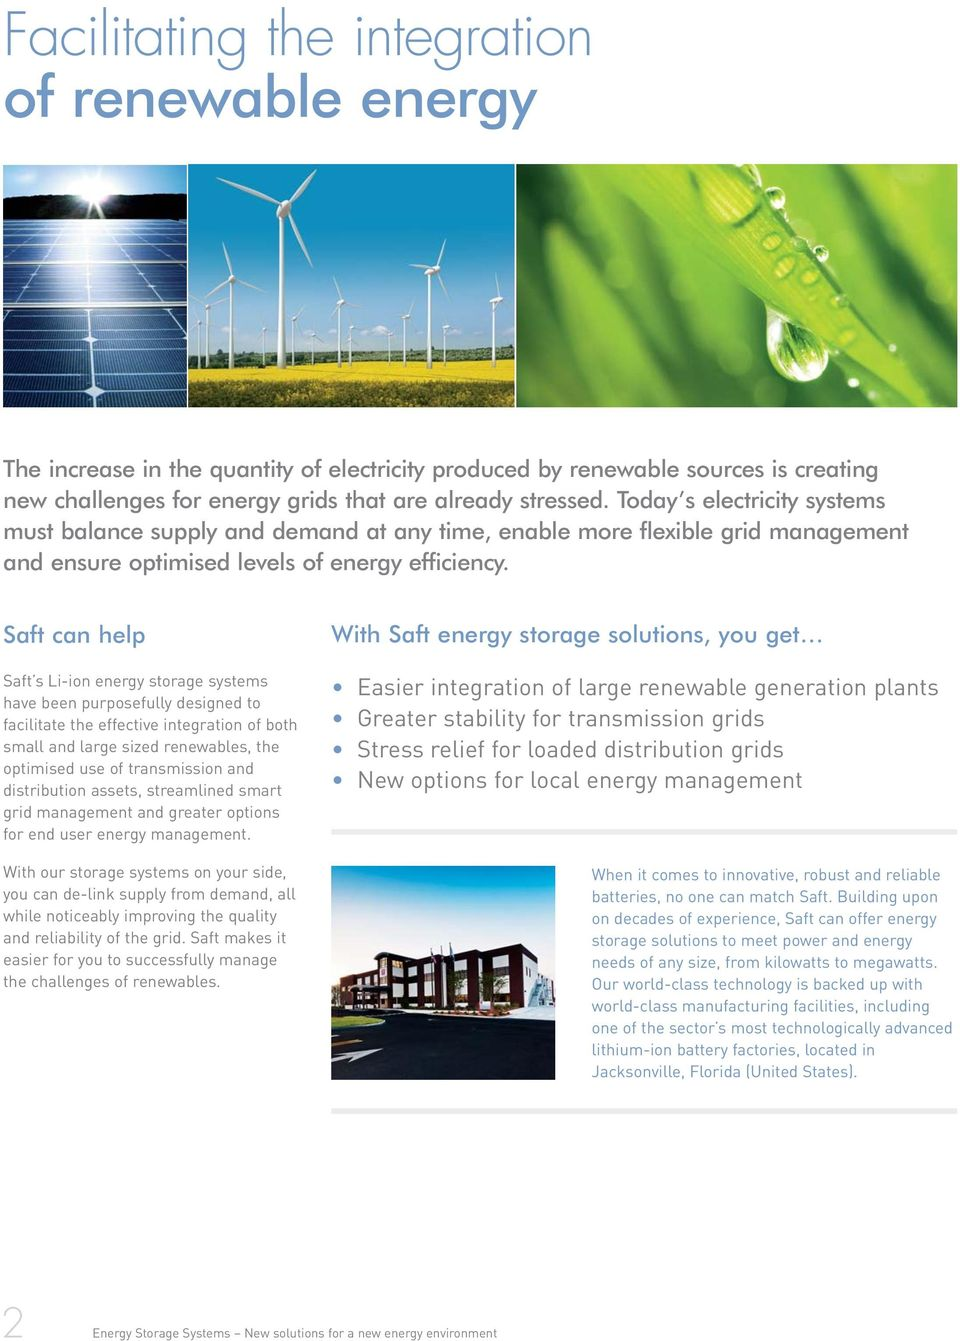 Saft can help Saft s Li-ion energy storage systems have been purposefully designed to facilitate the effective integration of both small and large sized renewables, the optimised use of transmission